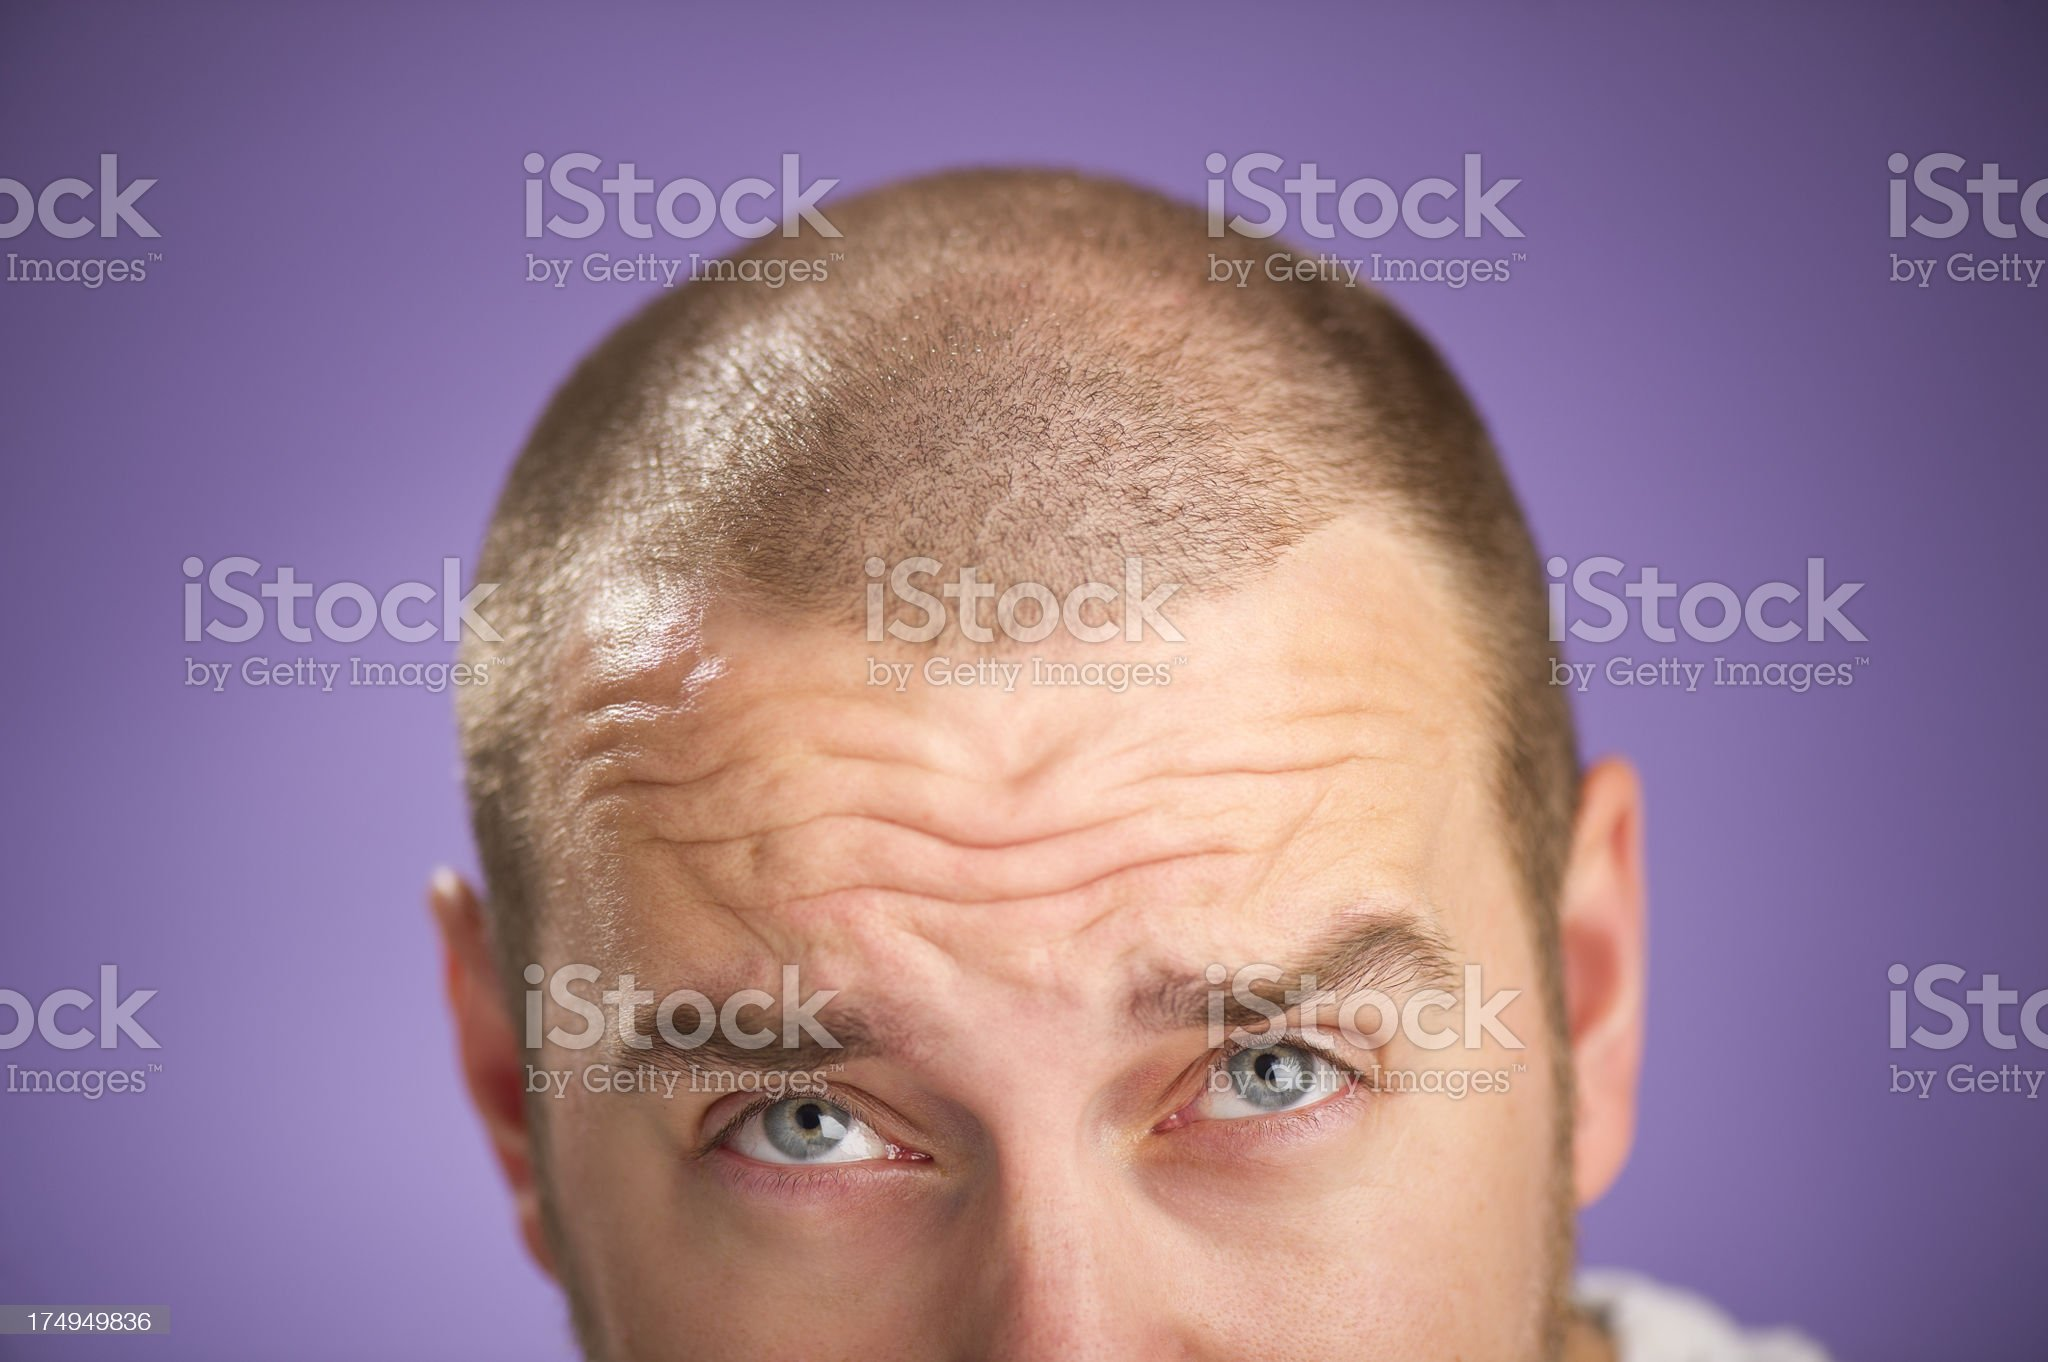 going thin on top royalty-free stock photo